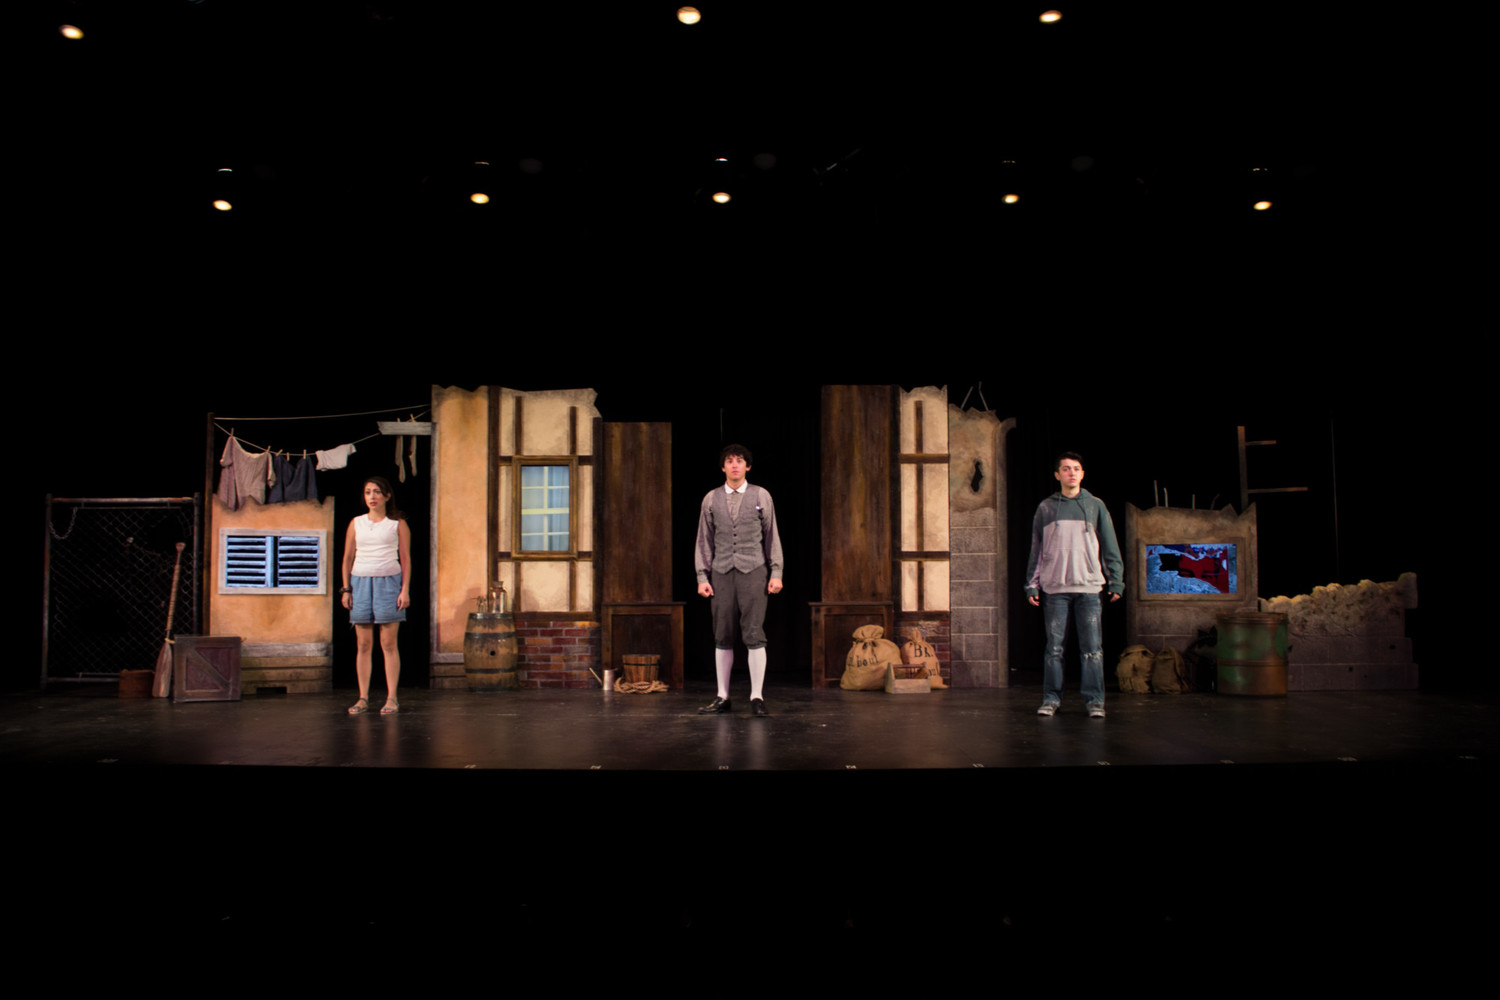 BWW Review: REFUGEE at Florida Repertory Theatre